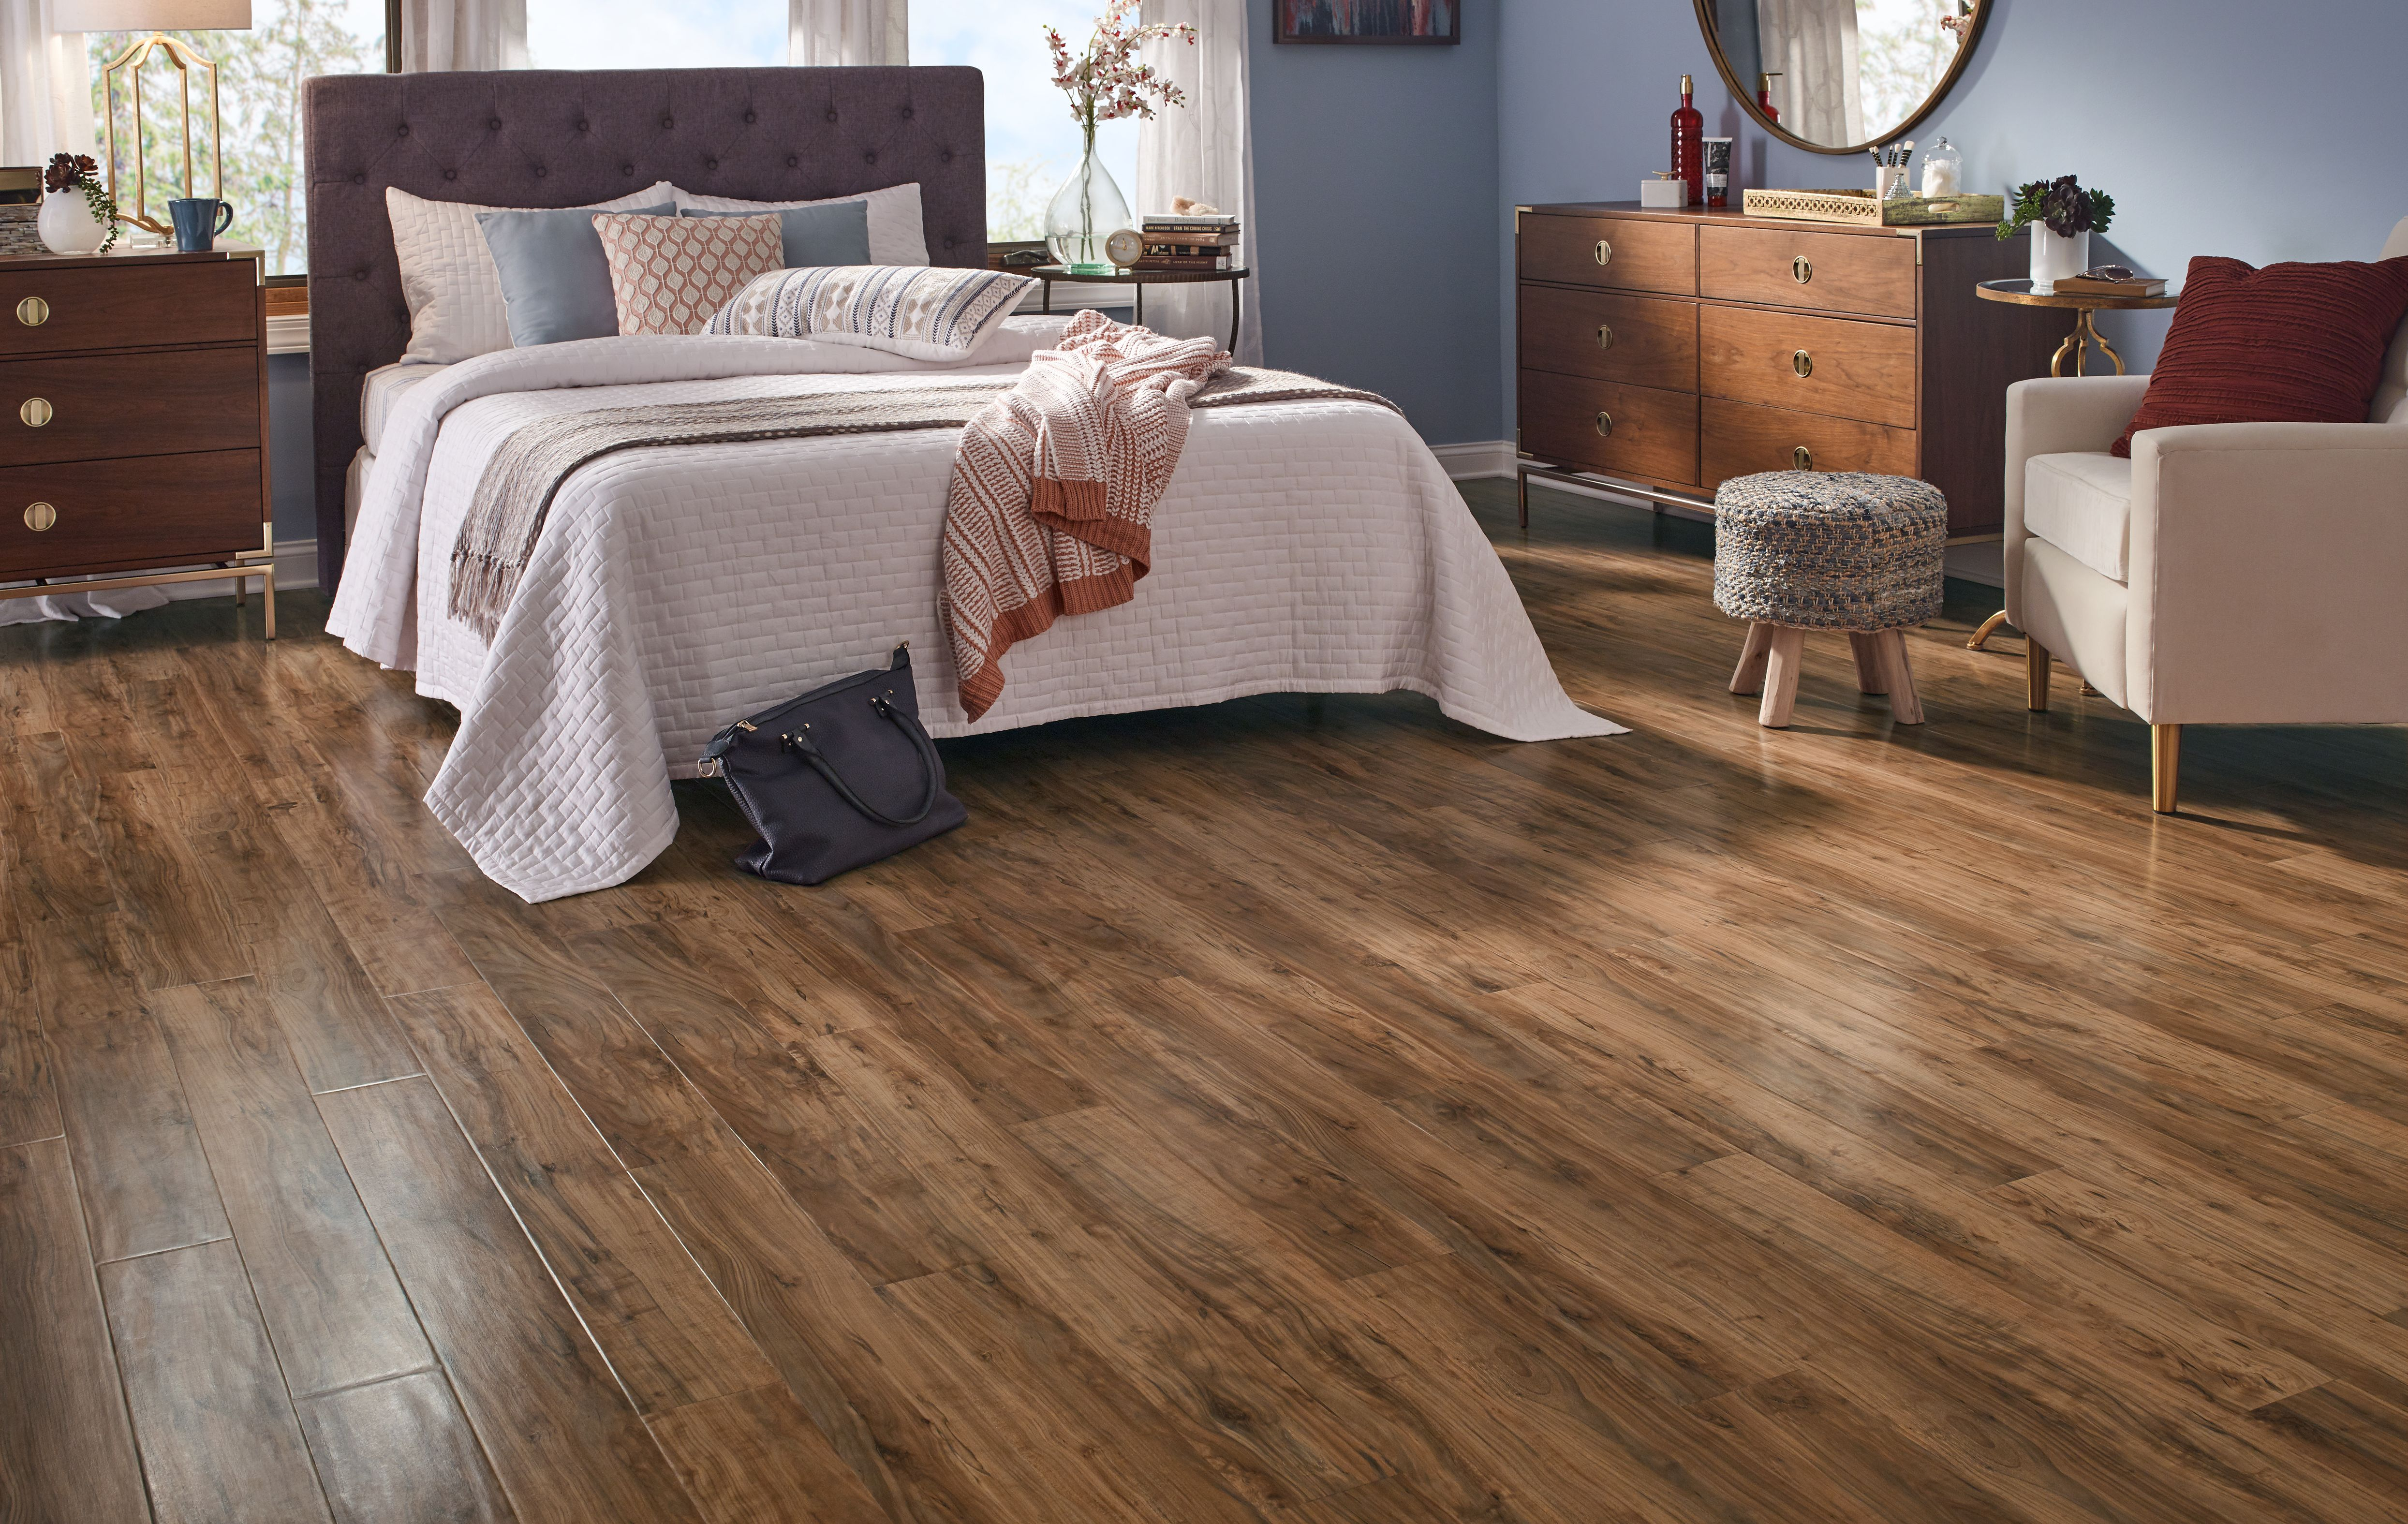 Applewood Pergo Outlast With Spillprotect Laminate Flooring